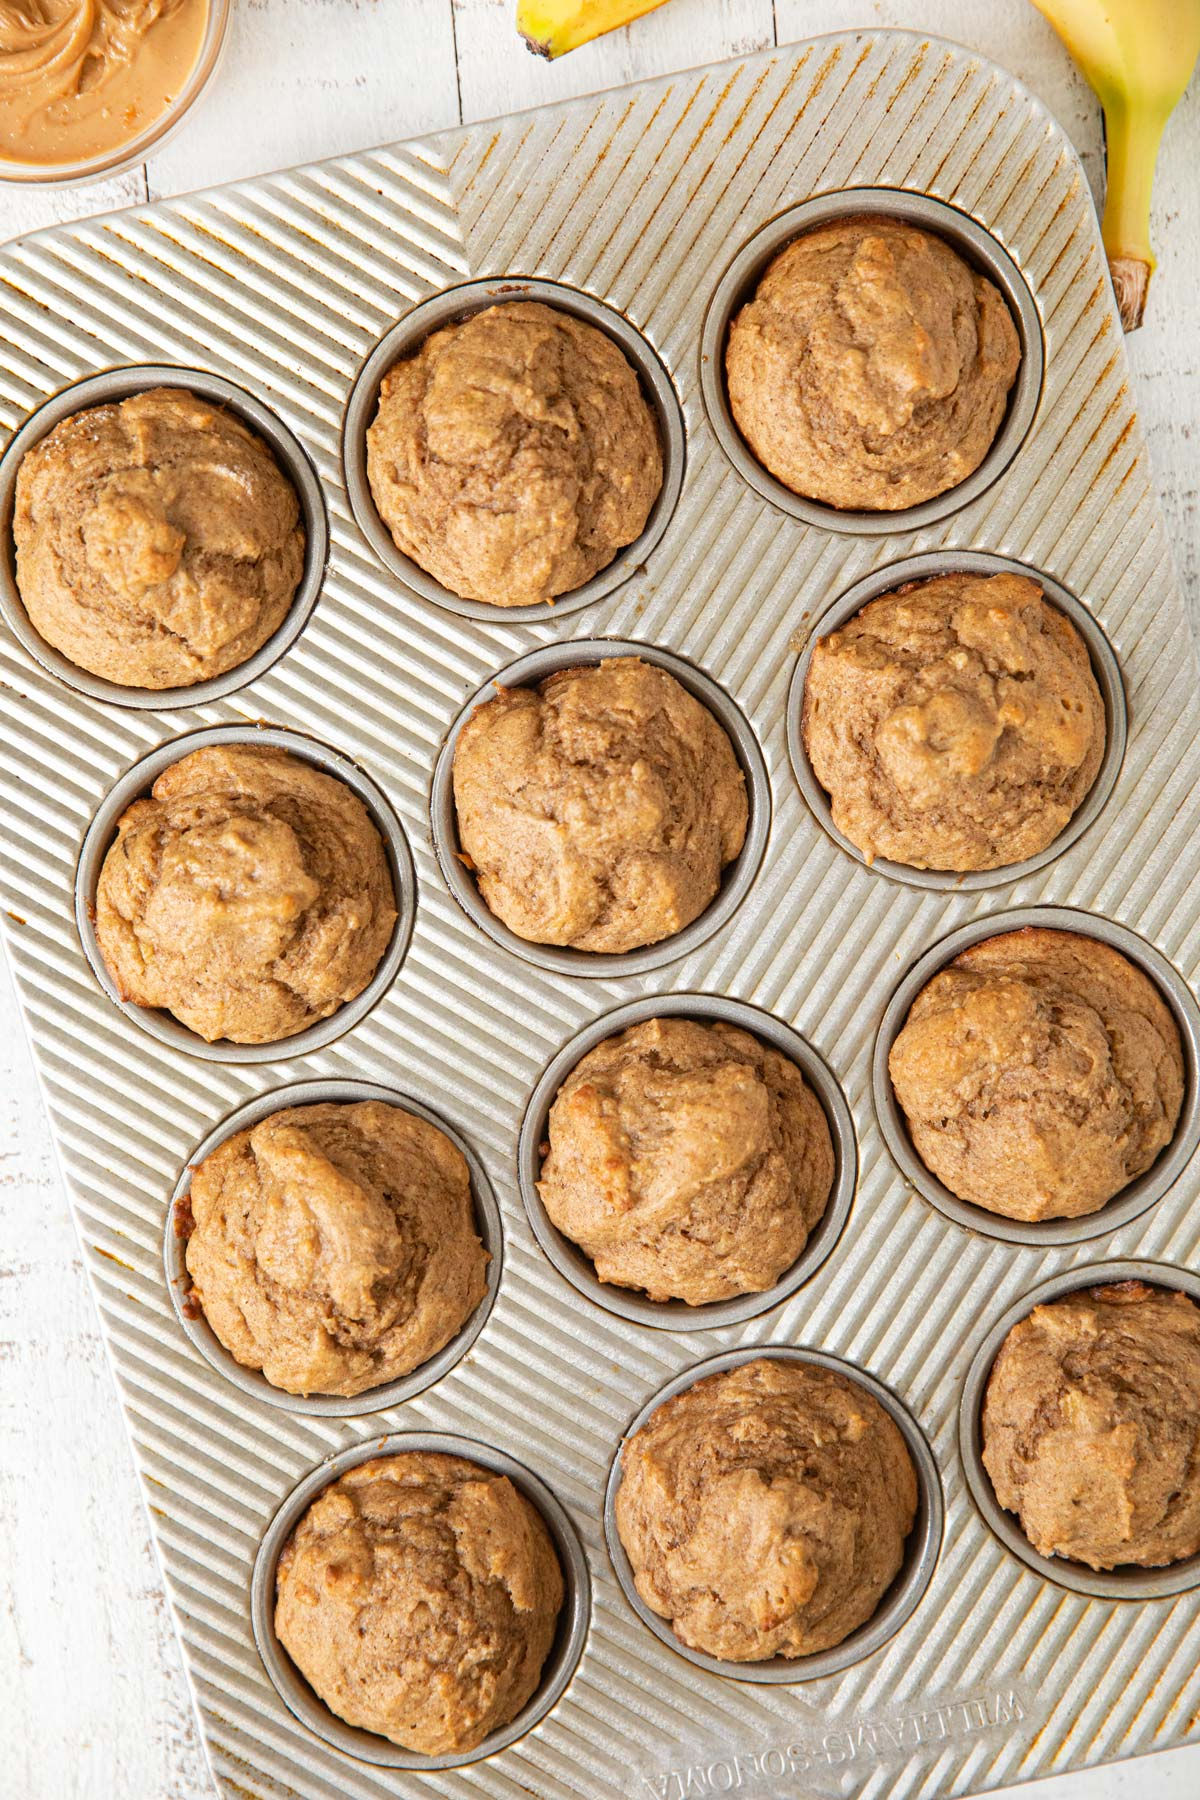 Tray of Peanut Butter Banana Muffins